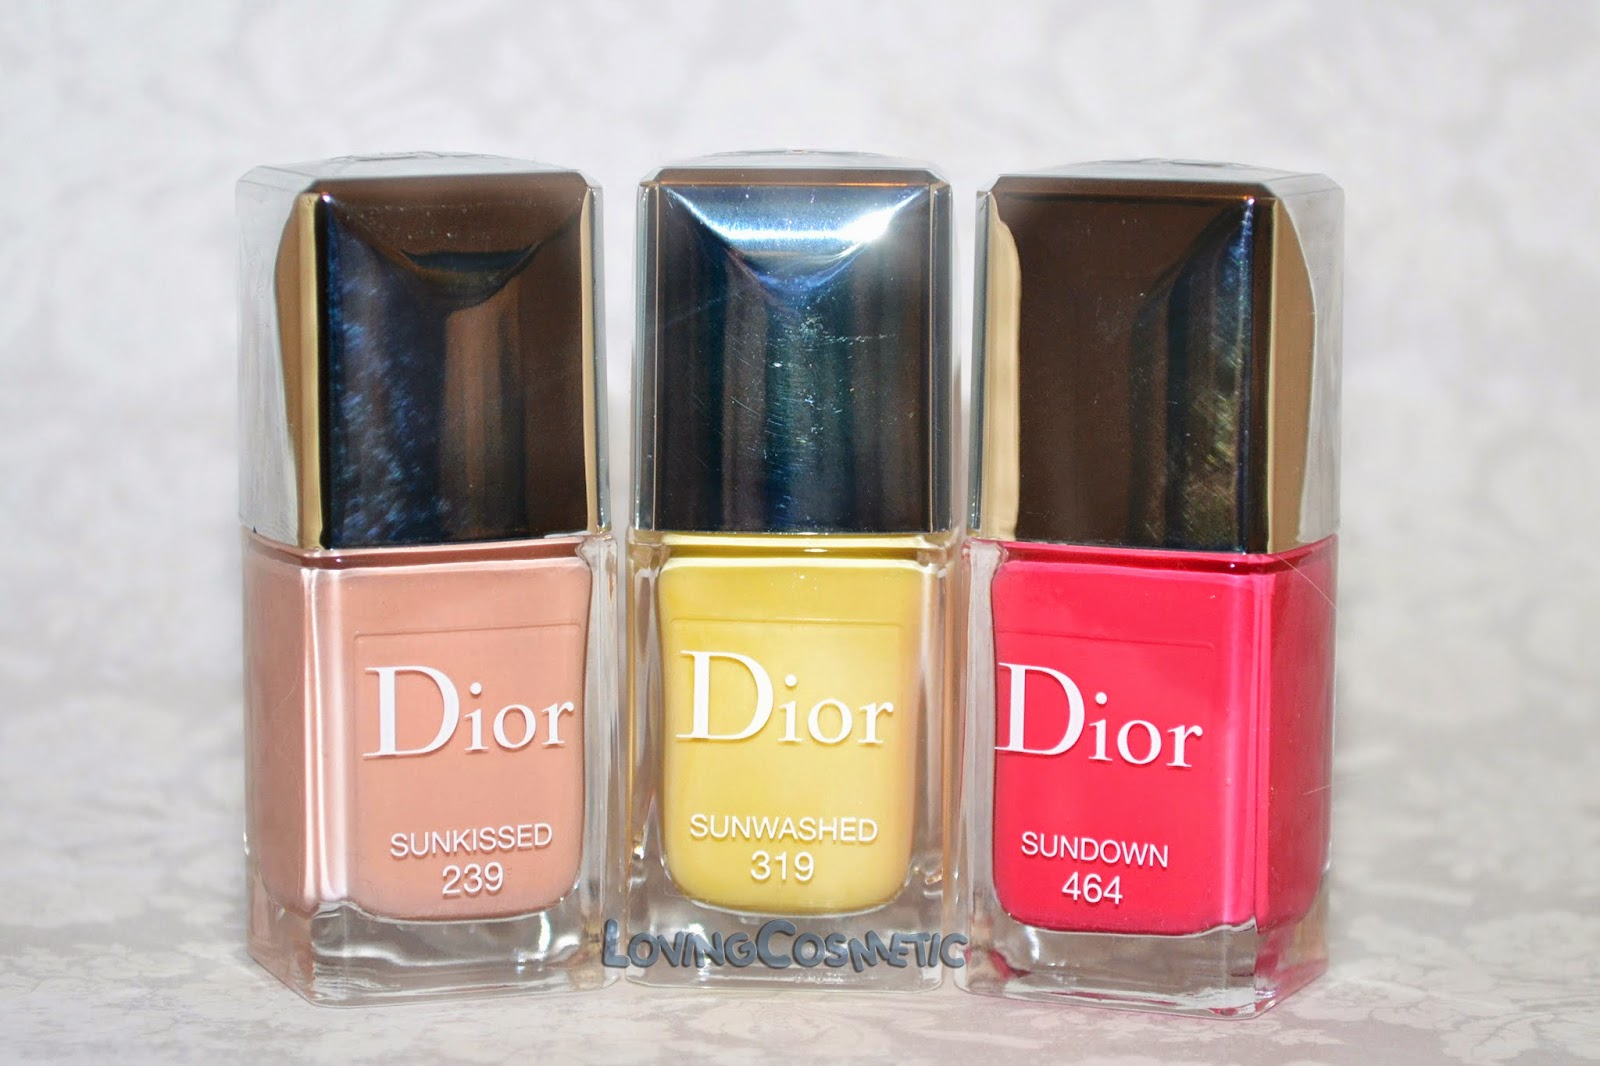 Dior Tie & Dye coleccion collection 2015 summer verano vernis sunwashed 319 sunkissed 239 sundown 464 tie dye top coar swatch swatches